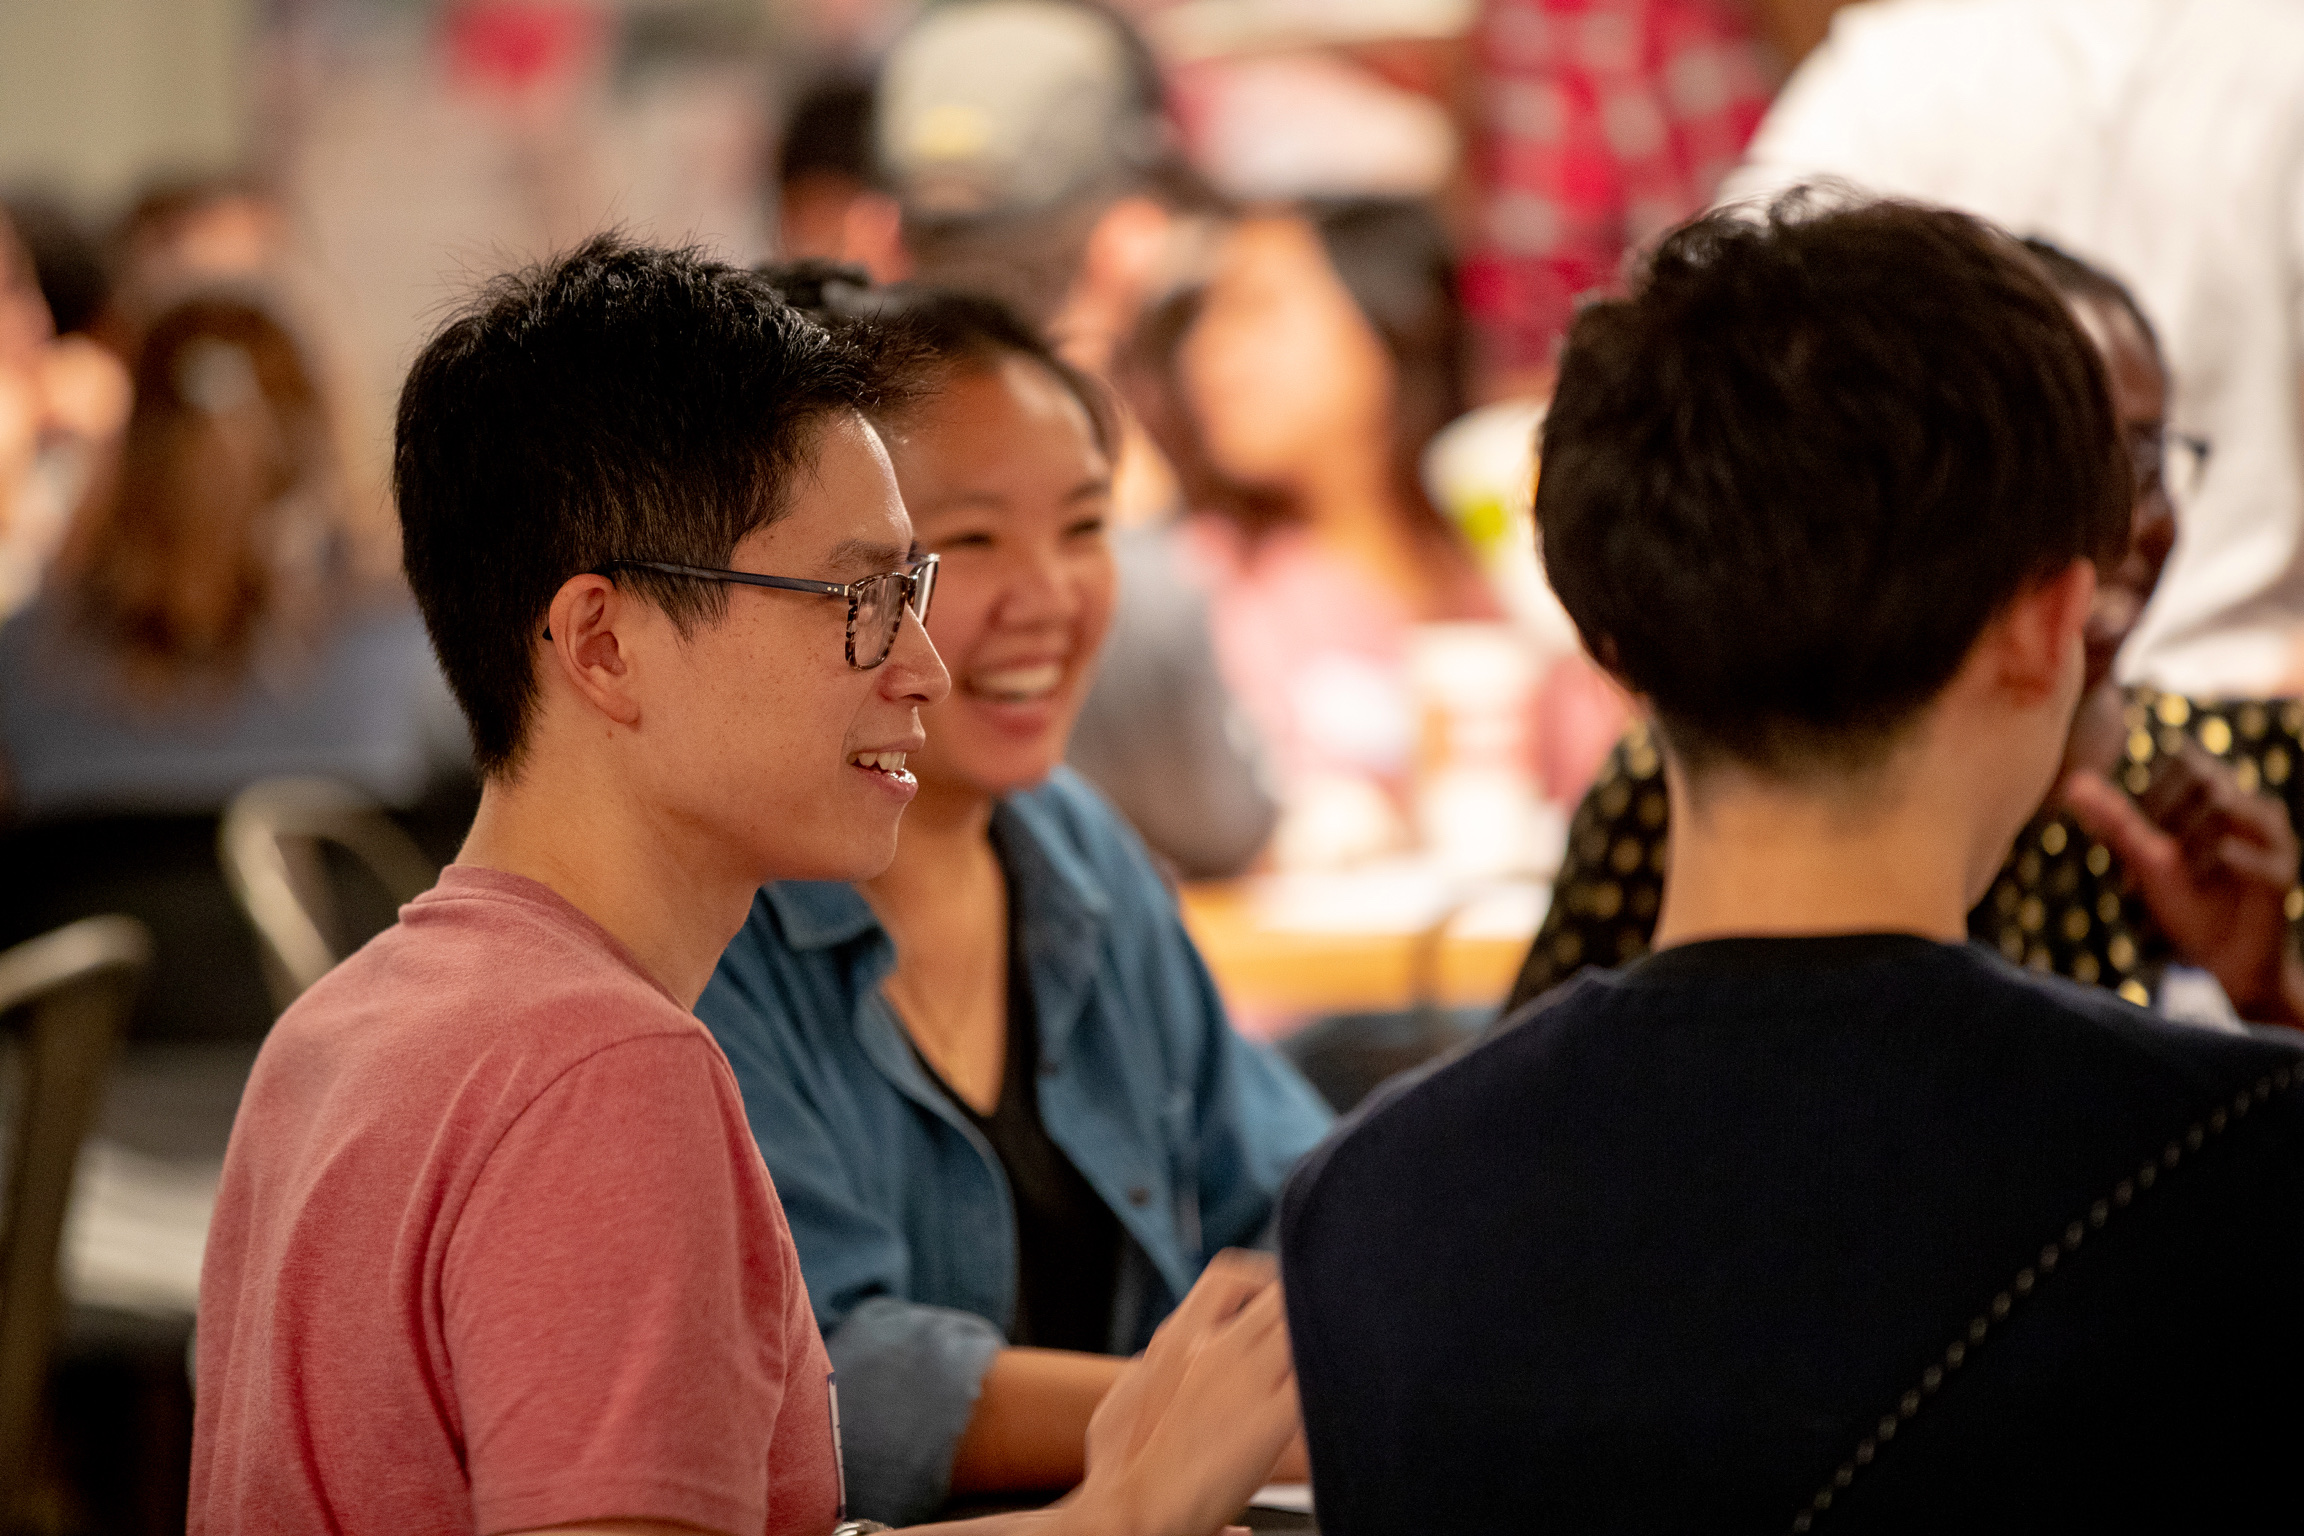 STEP 2: JOIN A GROUP - Community is a great setting for discipleship. The Christian faith is not intended to be lived in isolation; we were made to be in a relationship with God and with each other.